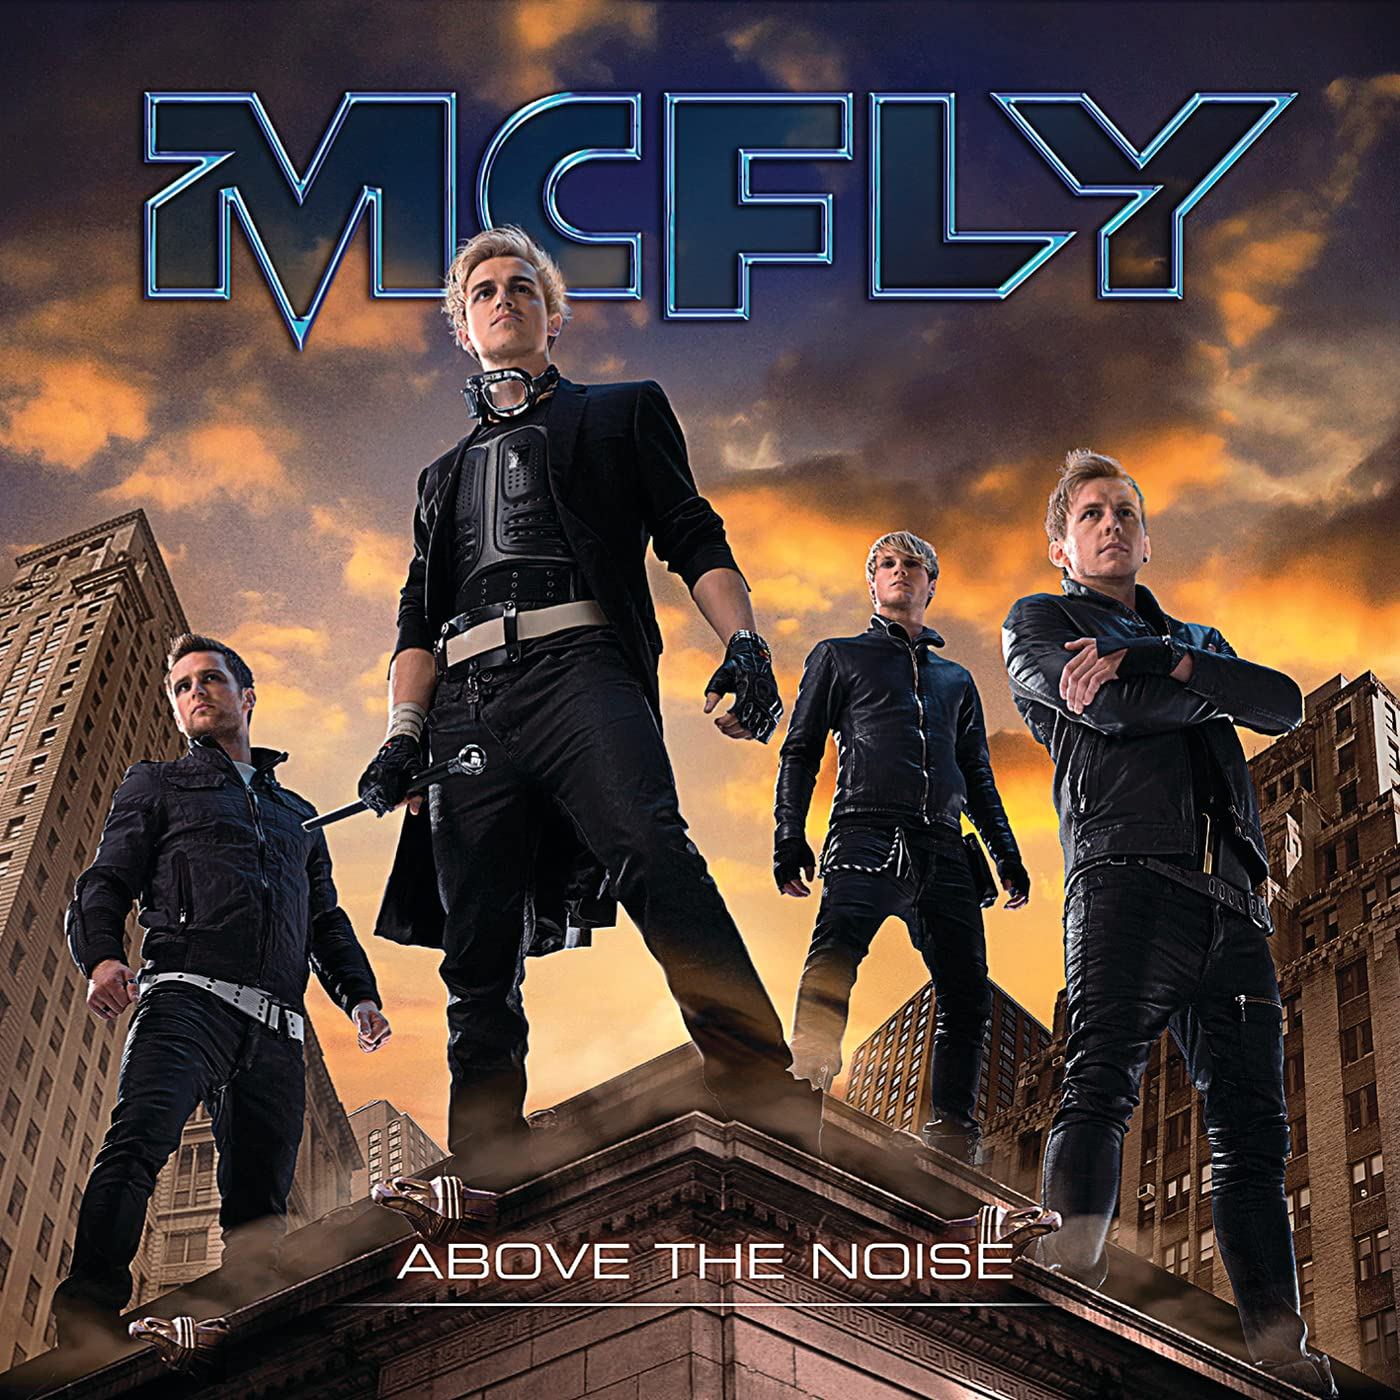 McFly – Above The Noise (2010) [FLAC]